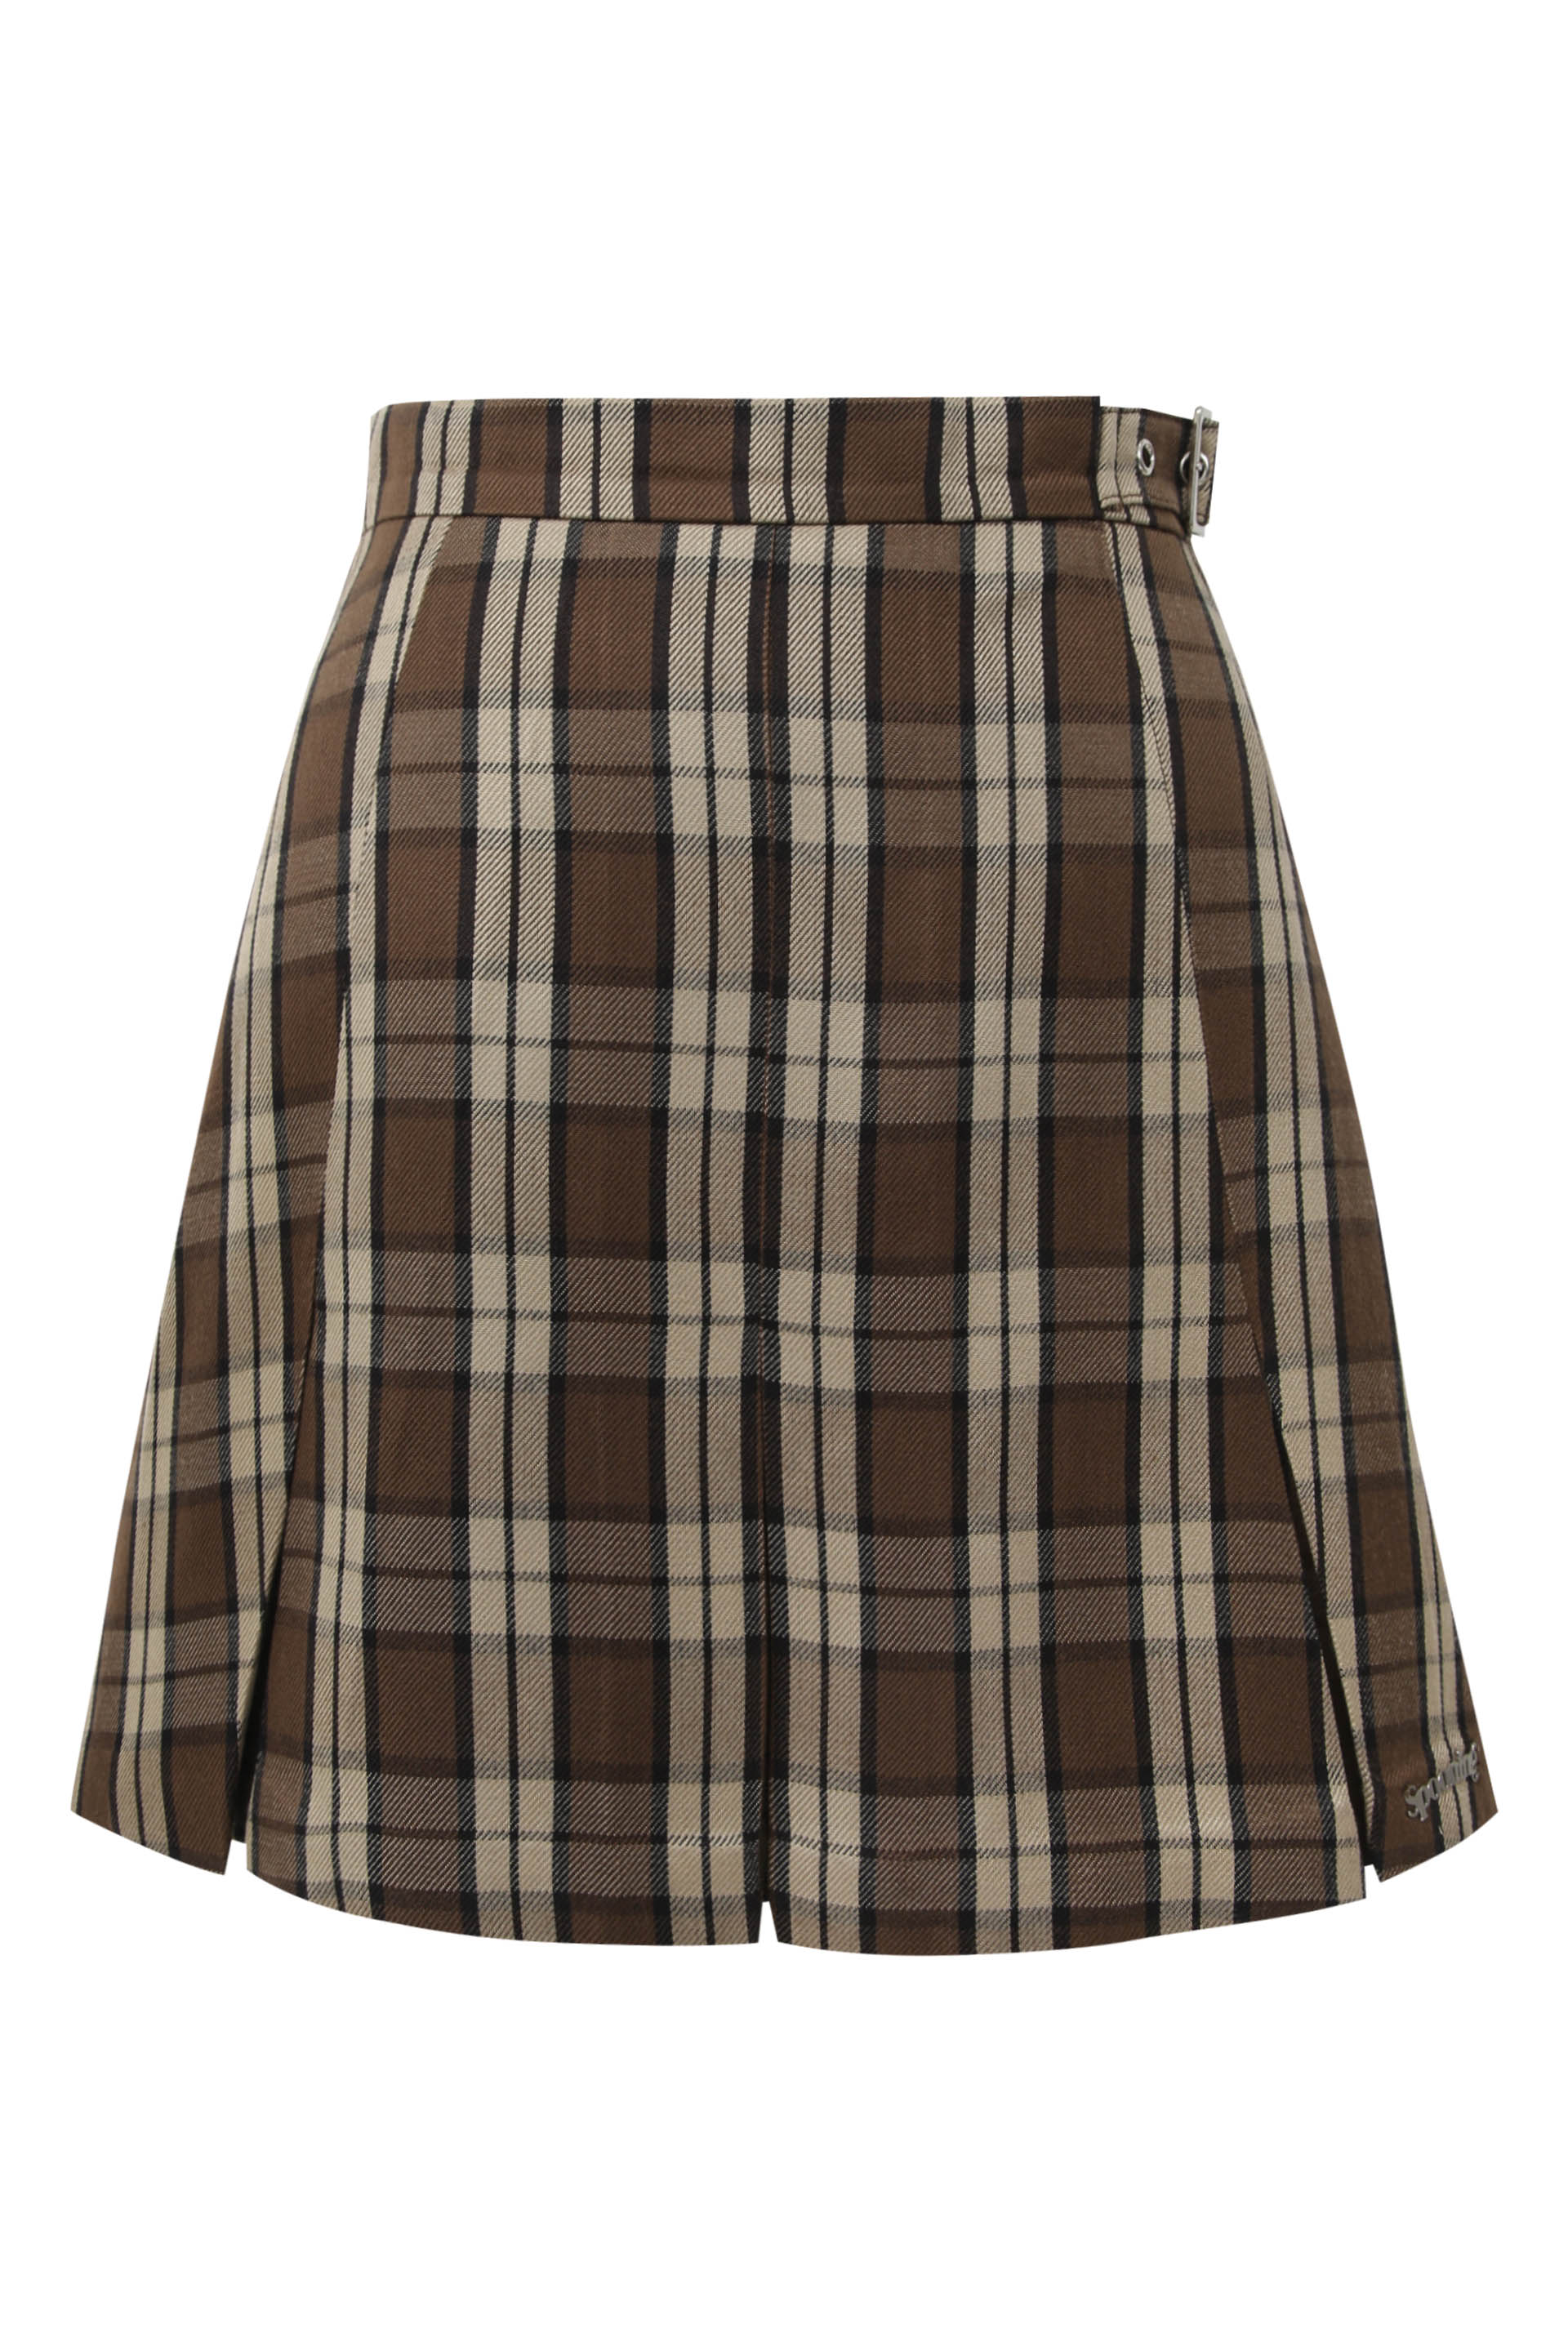 PRIMARY CLUB SKIRT